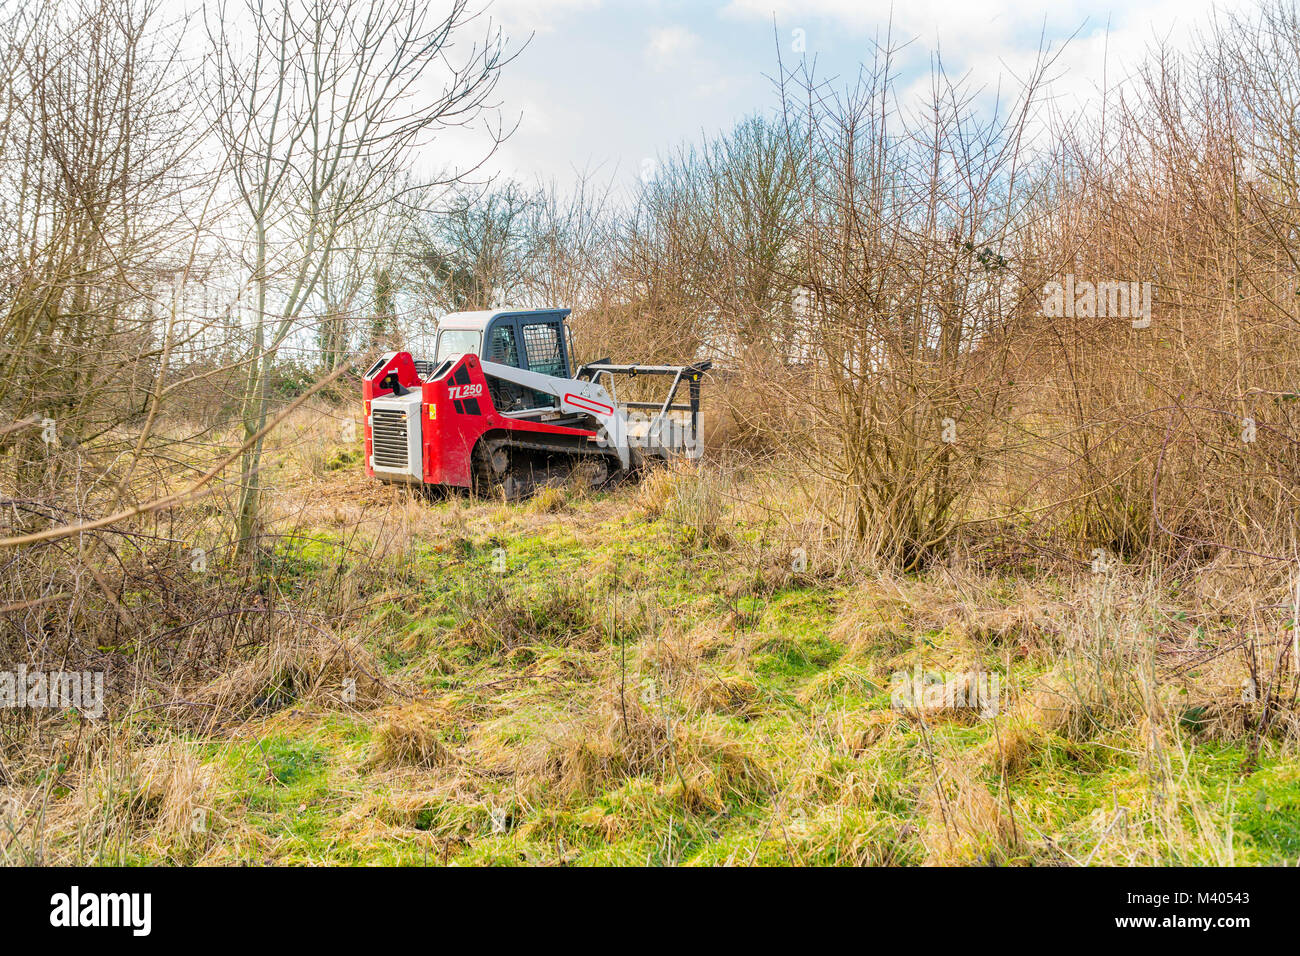 Brush cutter making short work of cutting back bramble and invasive